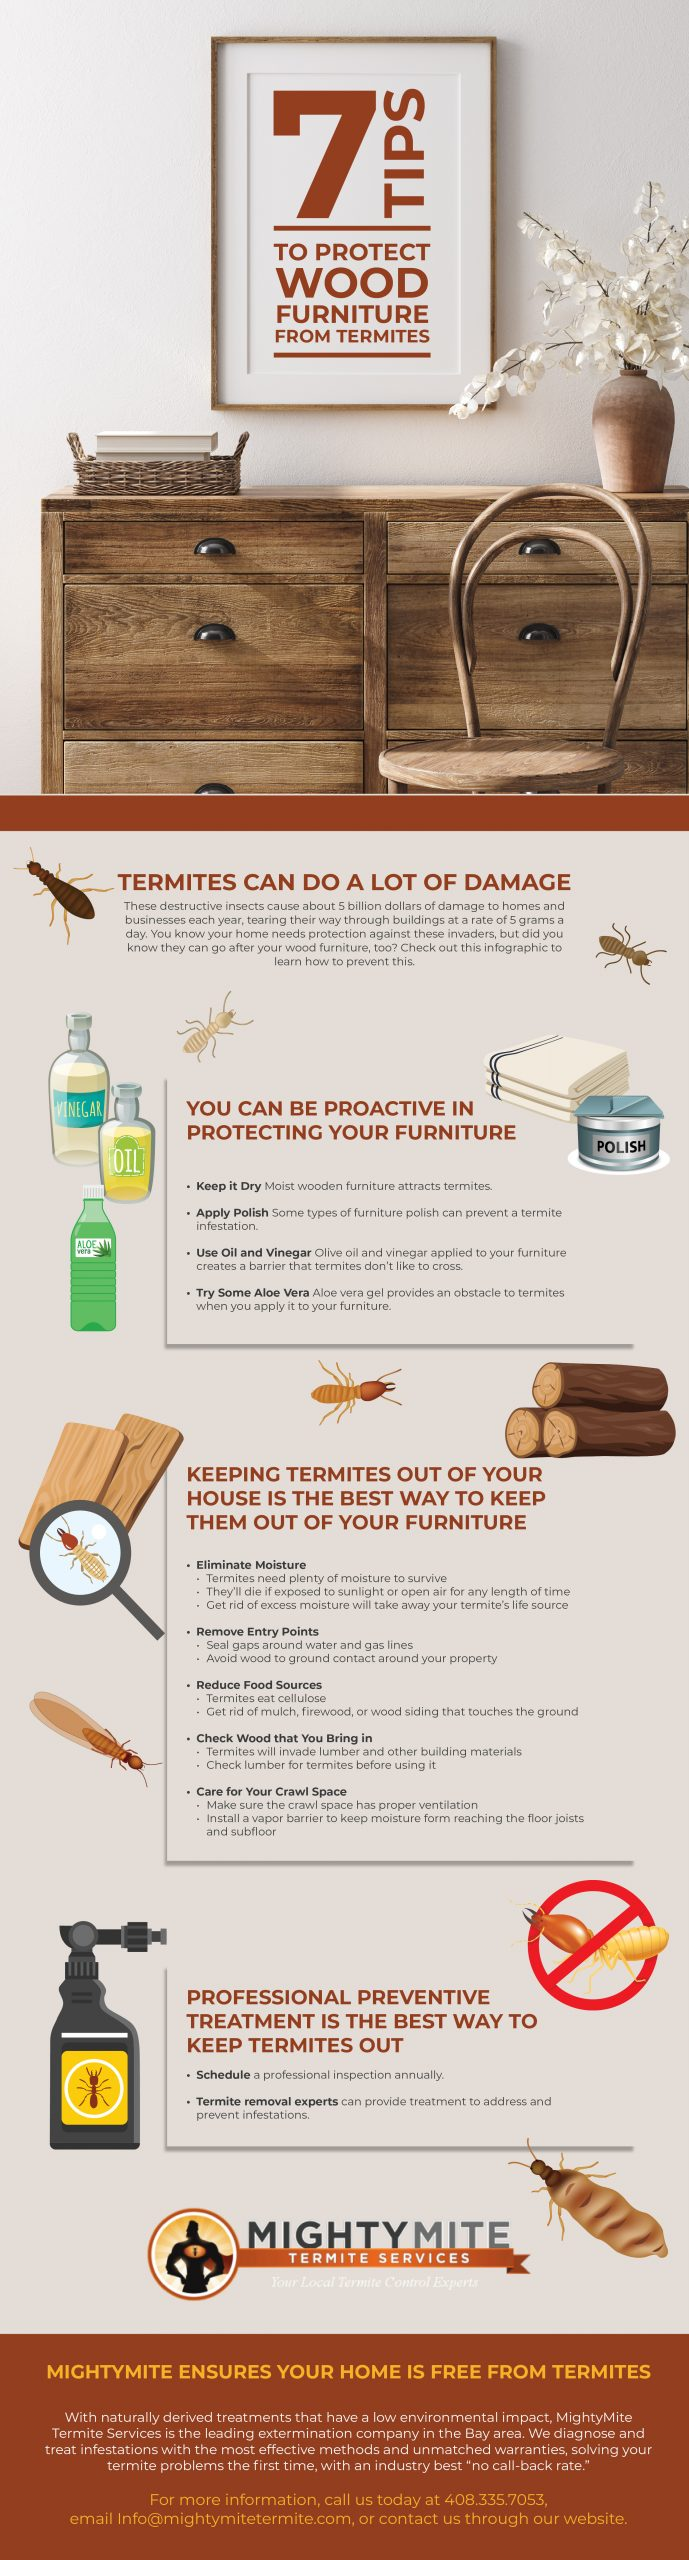 7 tips to protect wood from termites infographic